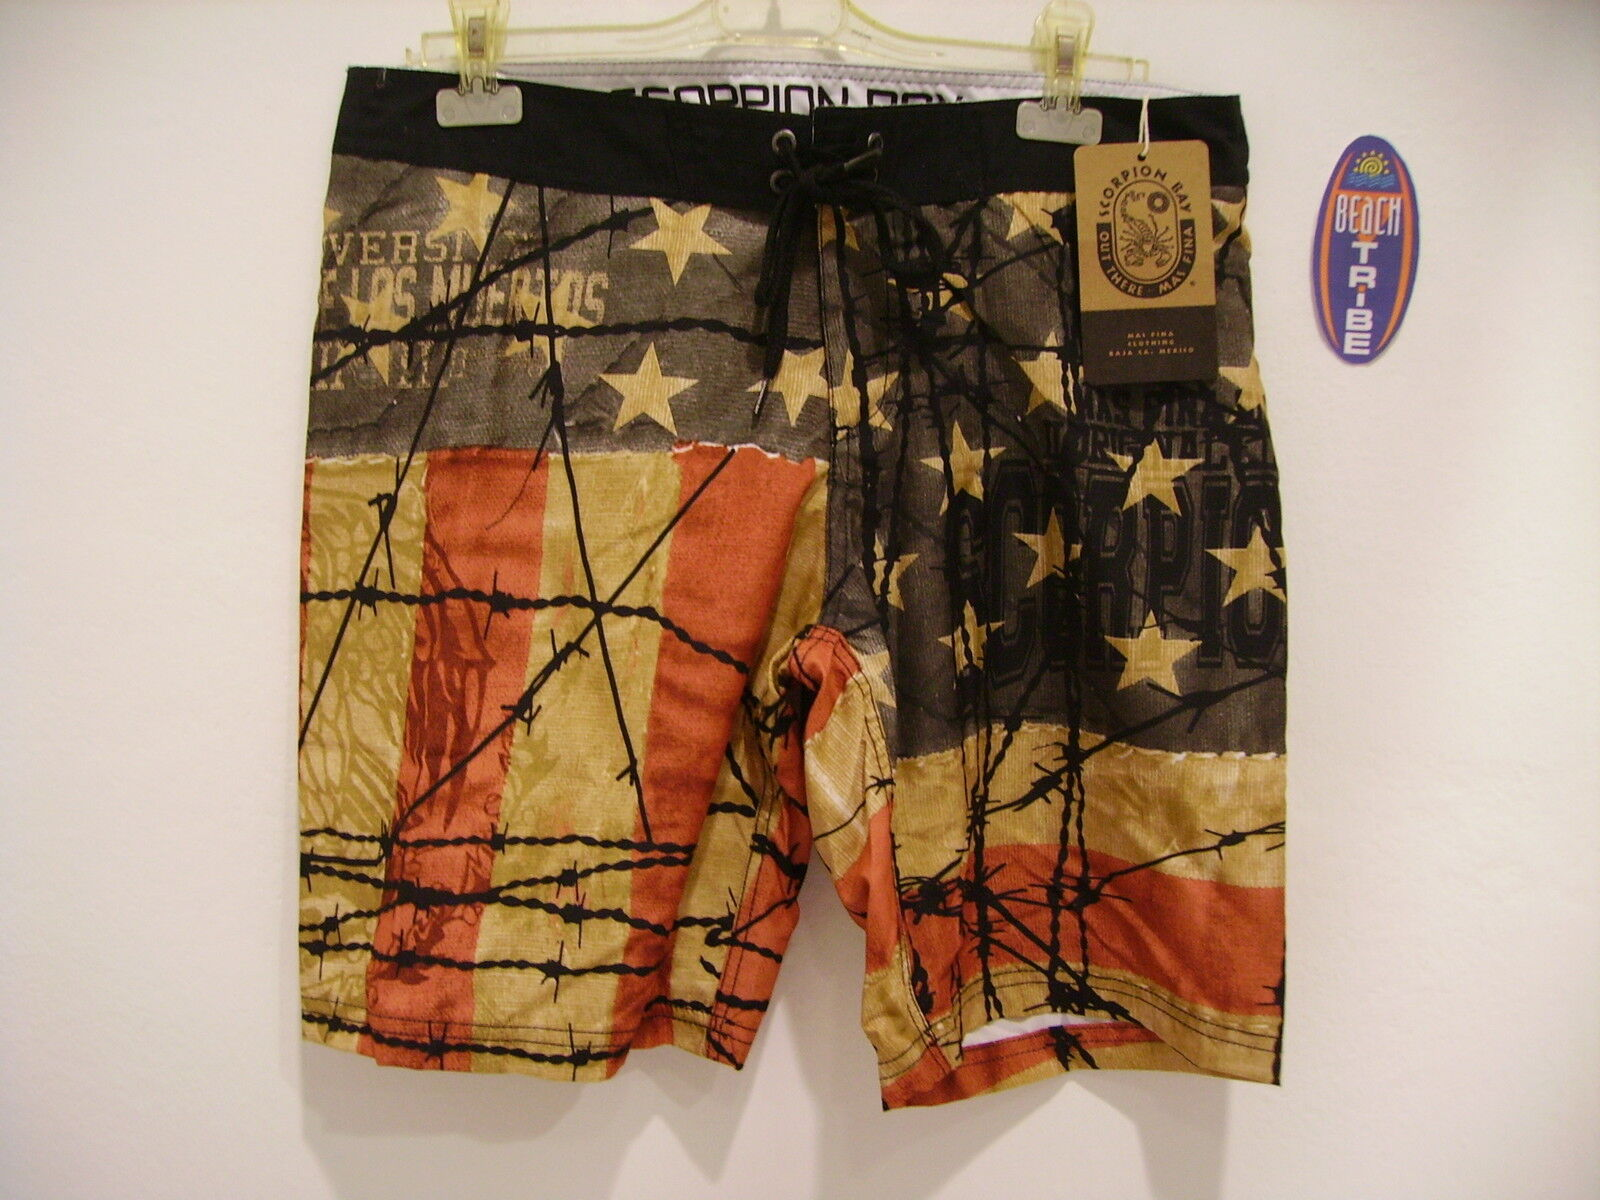 SCORPION BAY BOARDSHORT PANTALONCINO MARE COSTUME MBS2723 RED ALL OVER USA 34